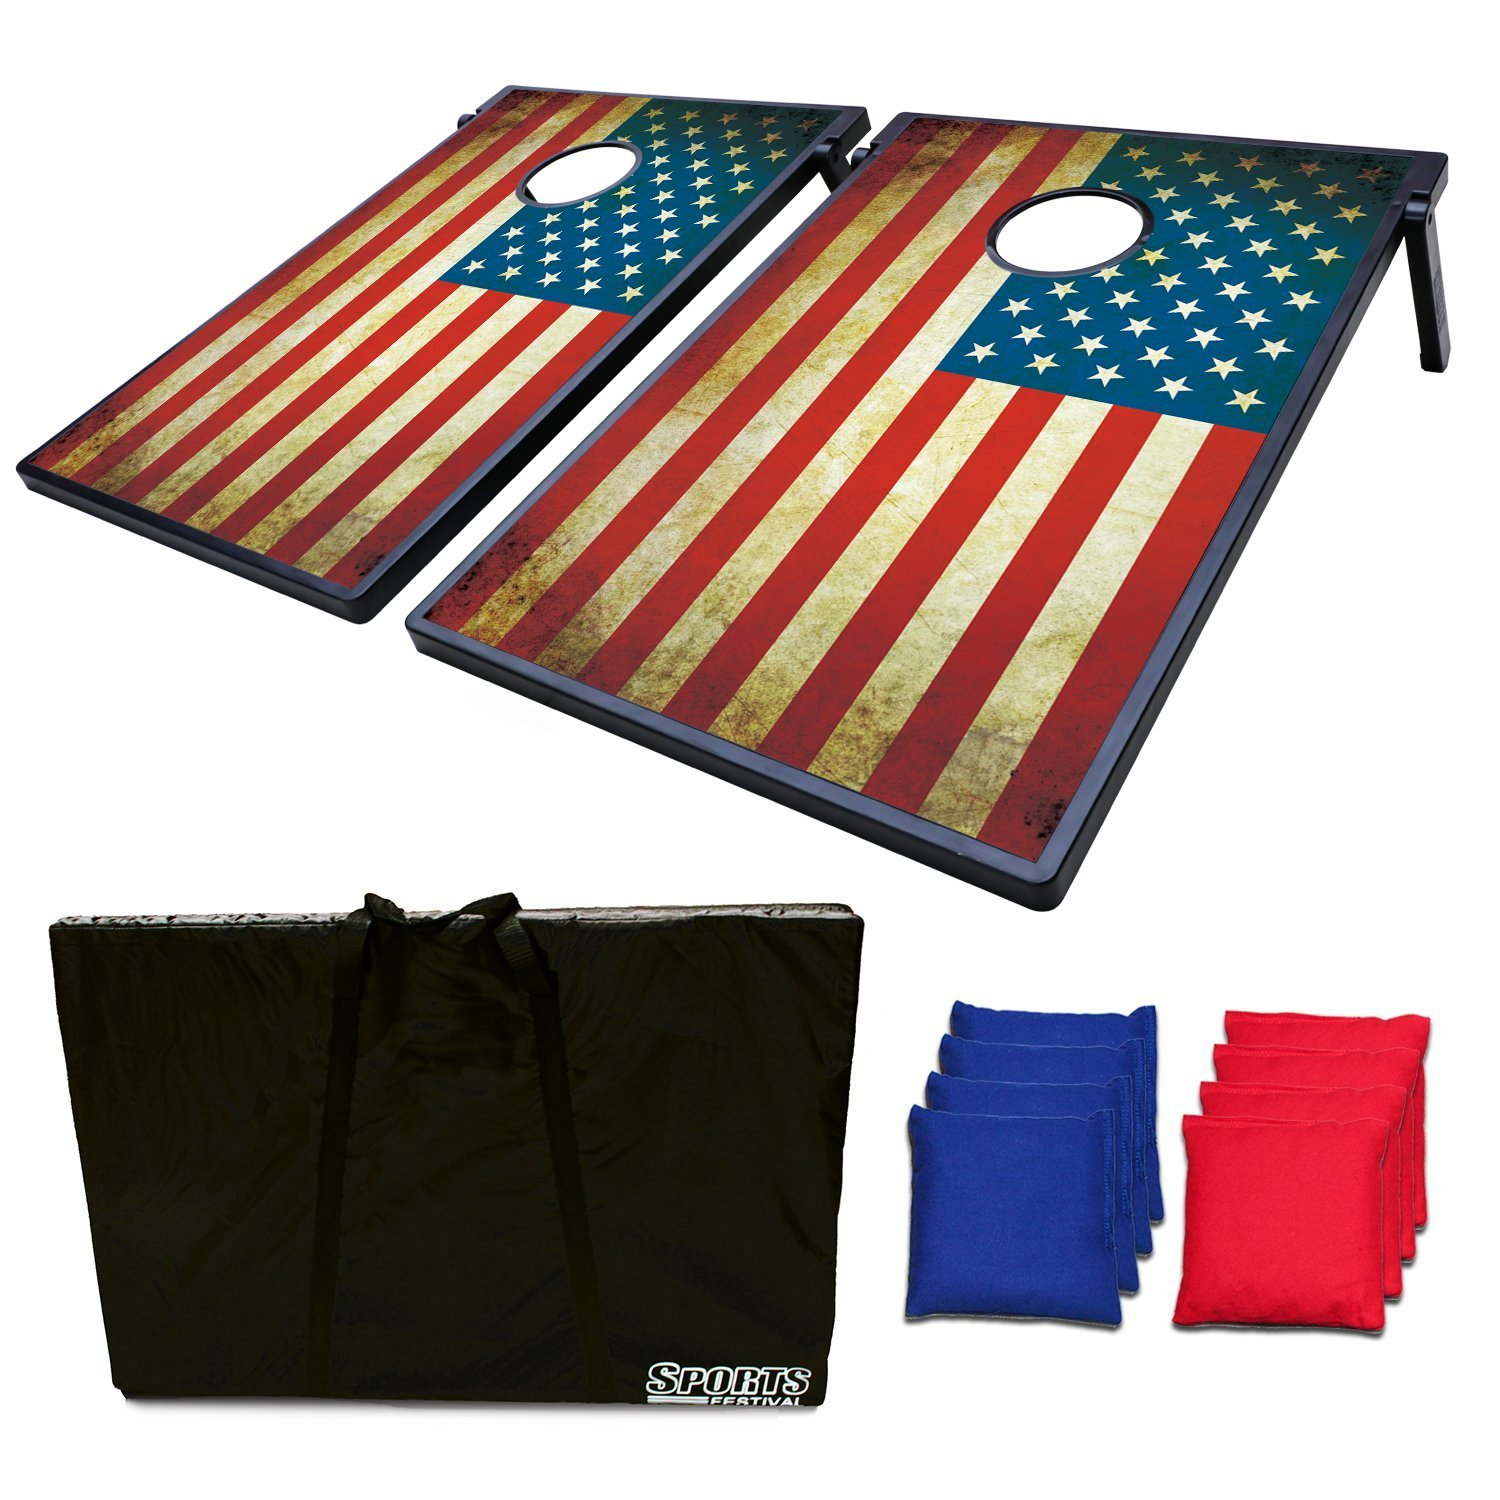 2-in-1 Cornhole Bean Bag Toss Game and Tic Tac Toe - Antique US Flag